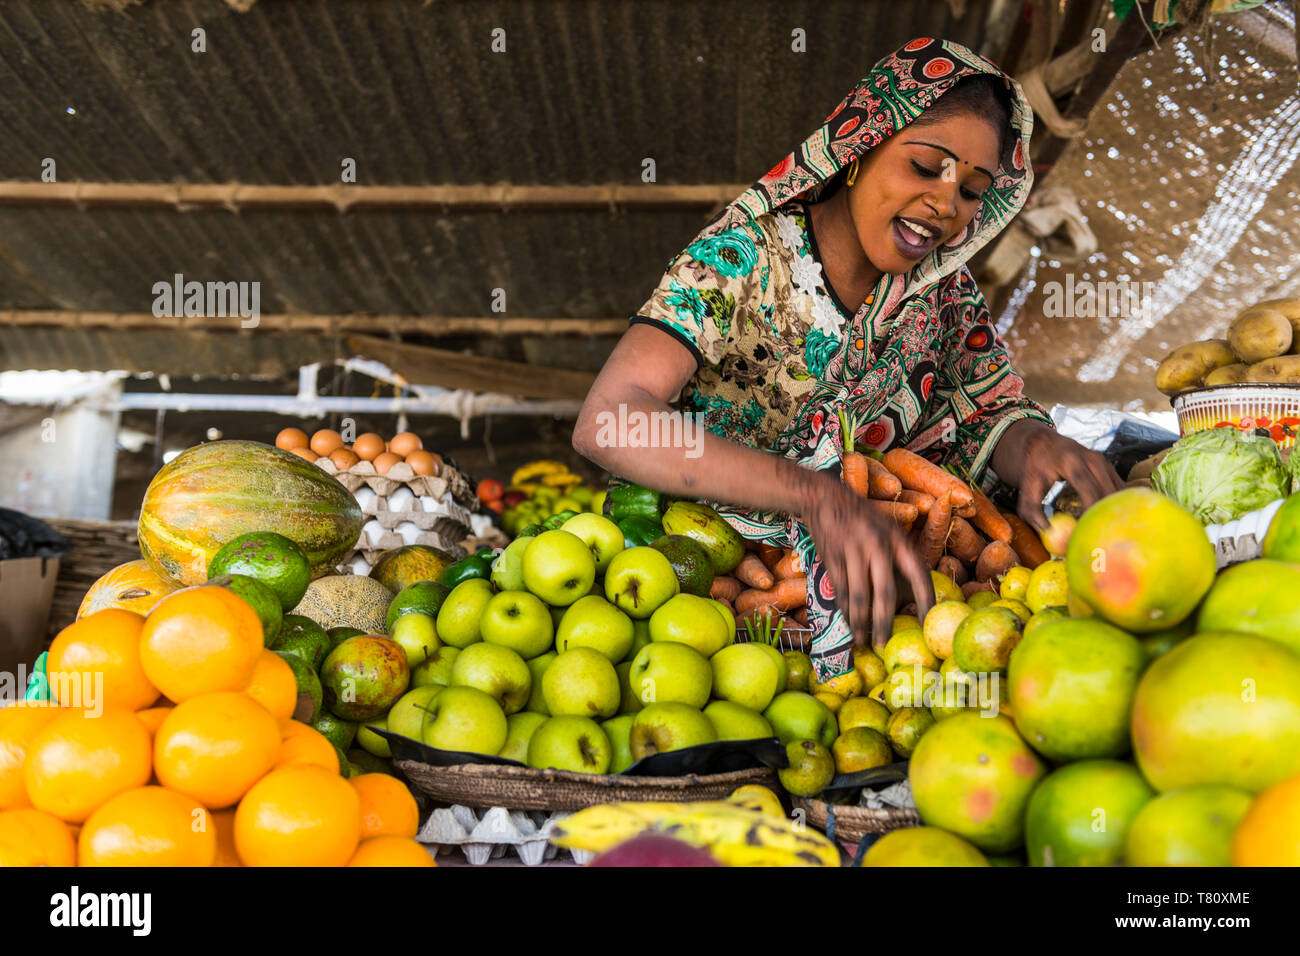 Happy sales woman on her fruit stall, Abeche, Chad, Africa - Stock Image